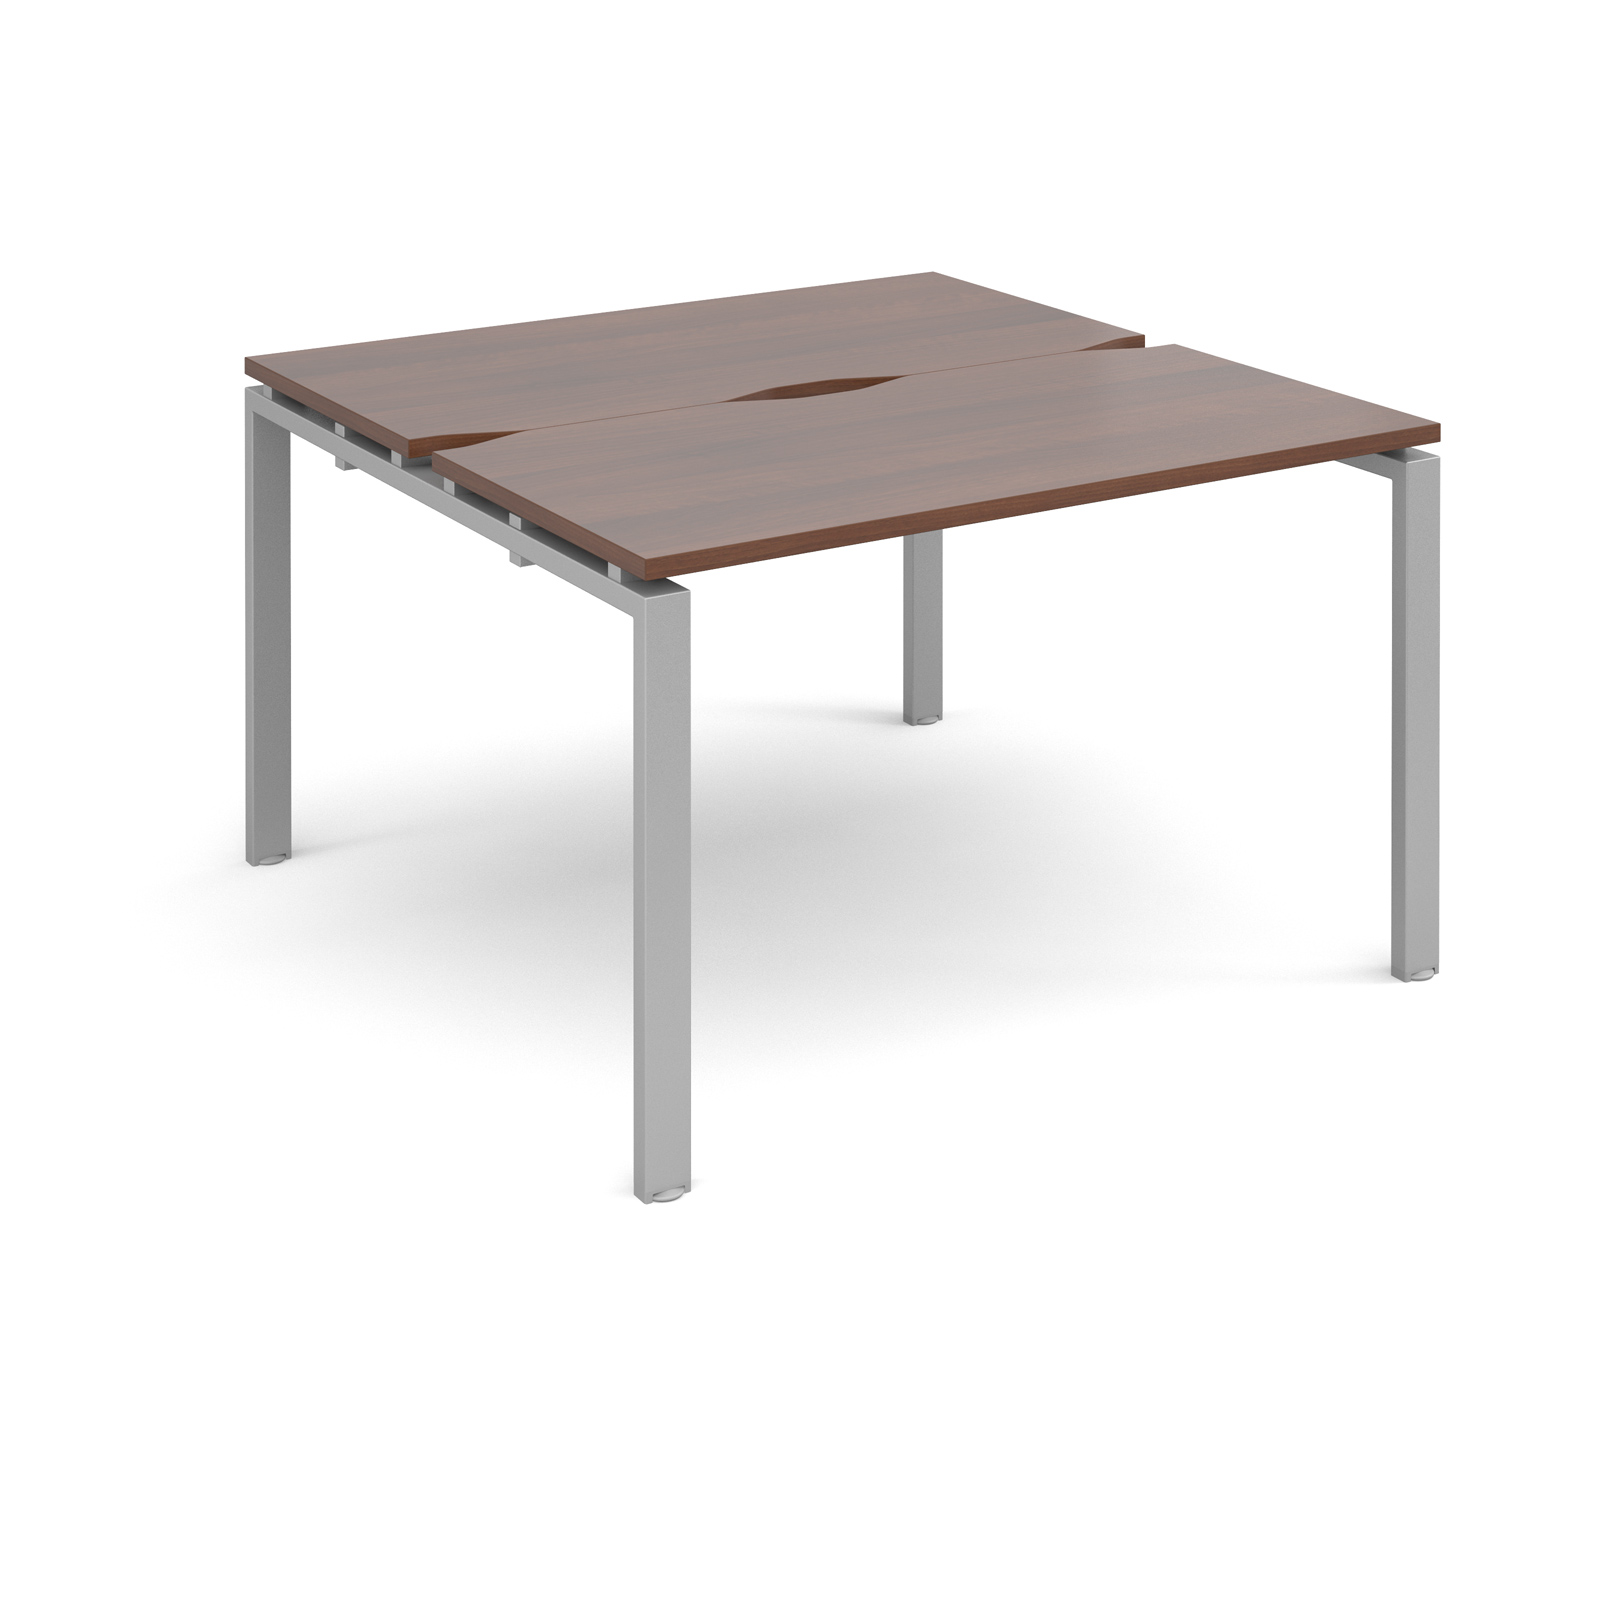 Adapt II 1200 x 1200 x 725mm Back to Back Desk - Walnut / Silver Leg